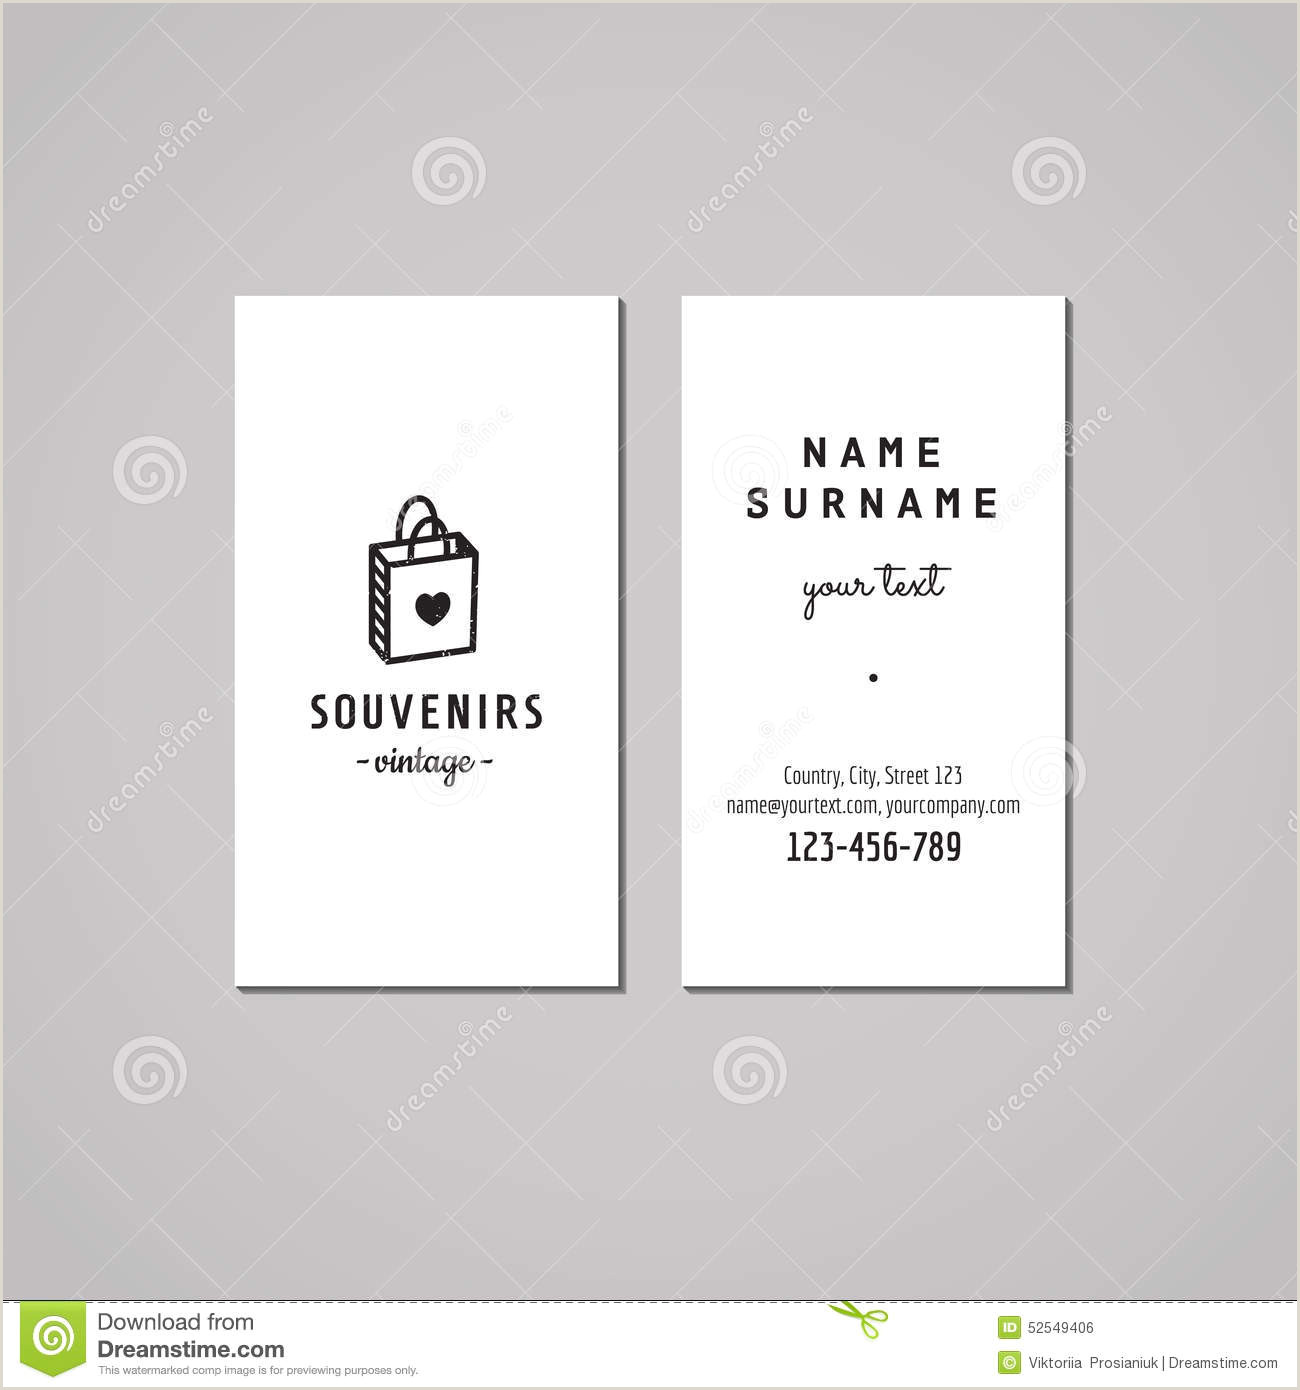 Hipster Business Cards Unique Size Gift Shop And Souvenirs Business Card Design Concept Gift